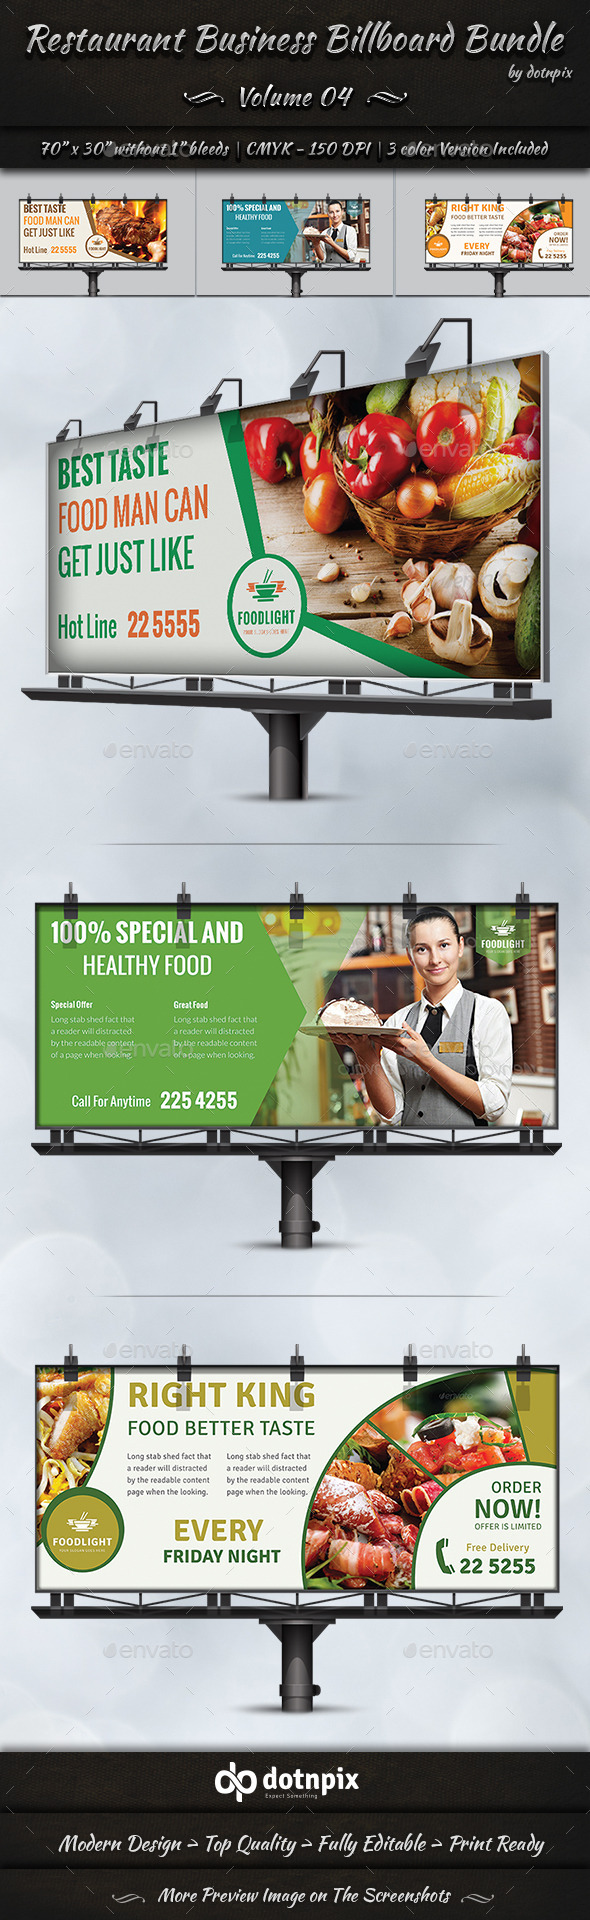 GraphicRiver Restaurant Business Billboard Bundle Volume 4 8988252